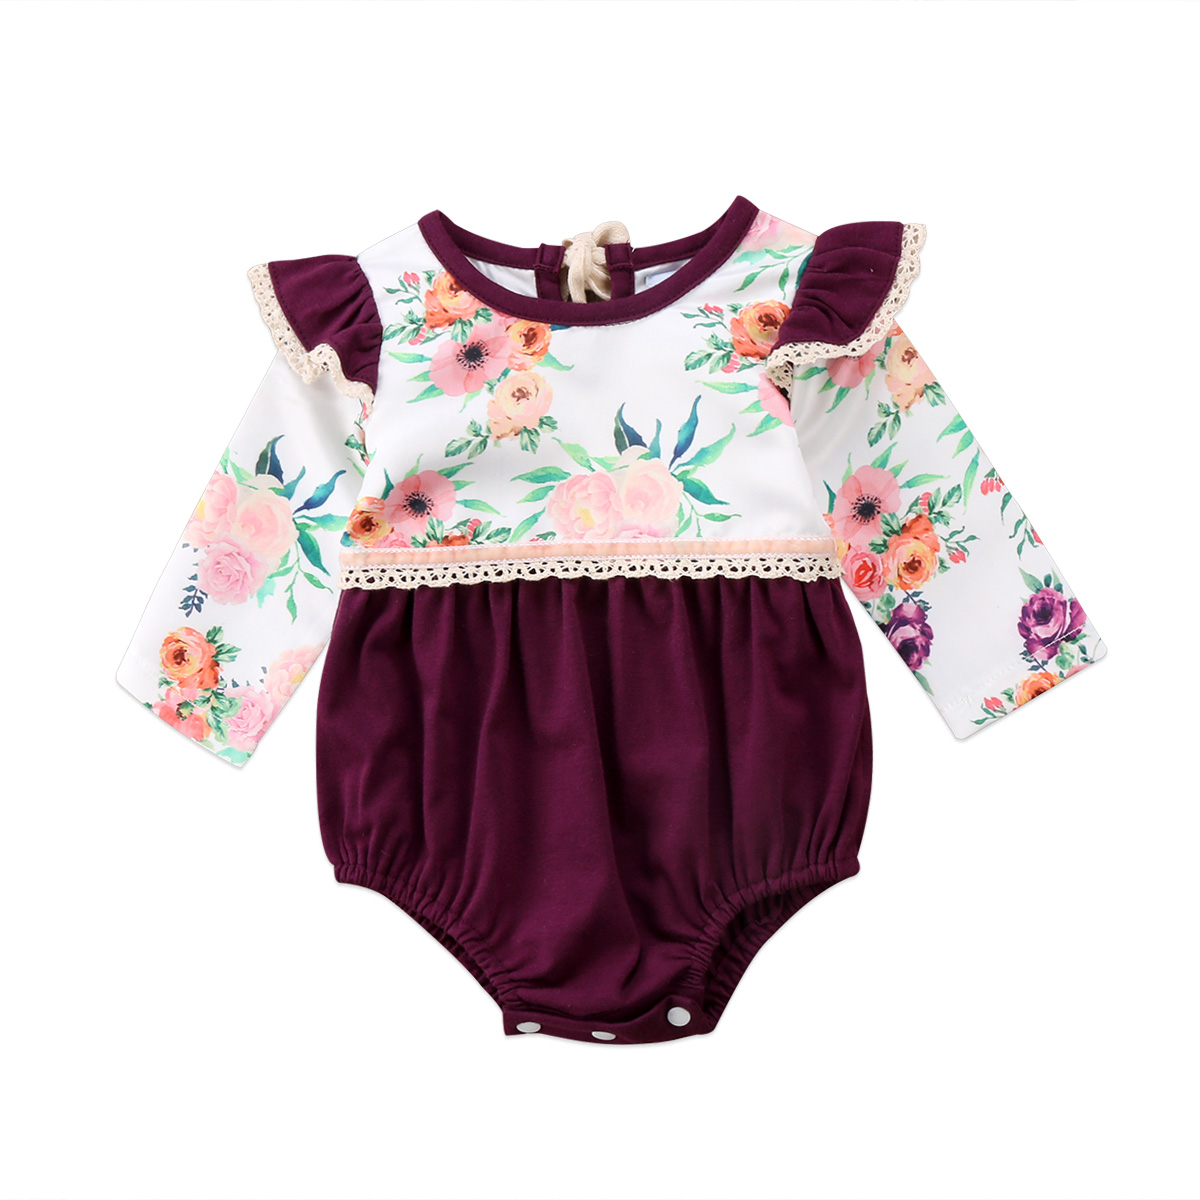 Flower Girls Clothing Newborn Infant Baby Girls Floral Long sleeve Romper Jumpsuit Cute Baby Outfits Set Clothes 0-2T